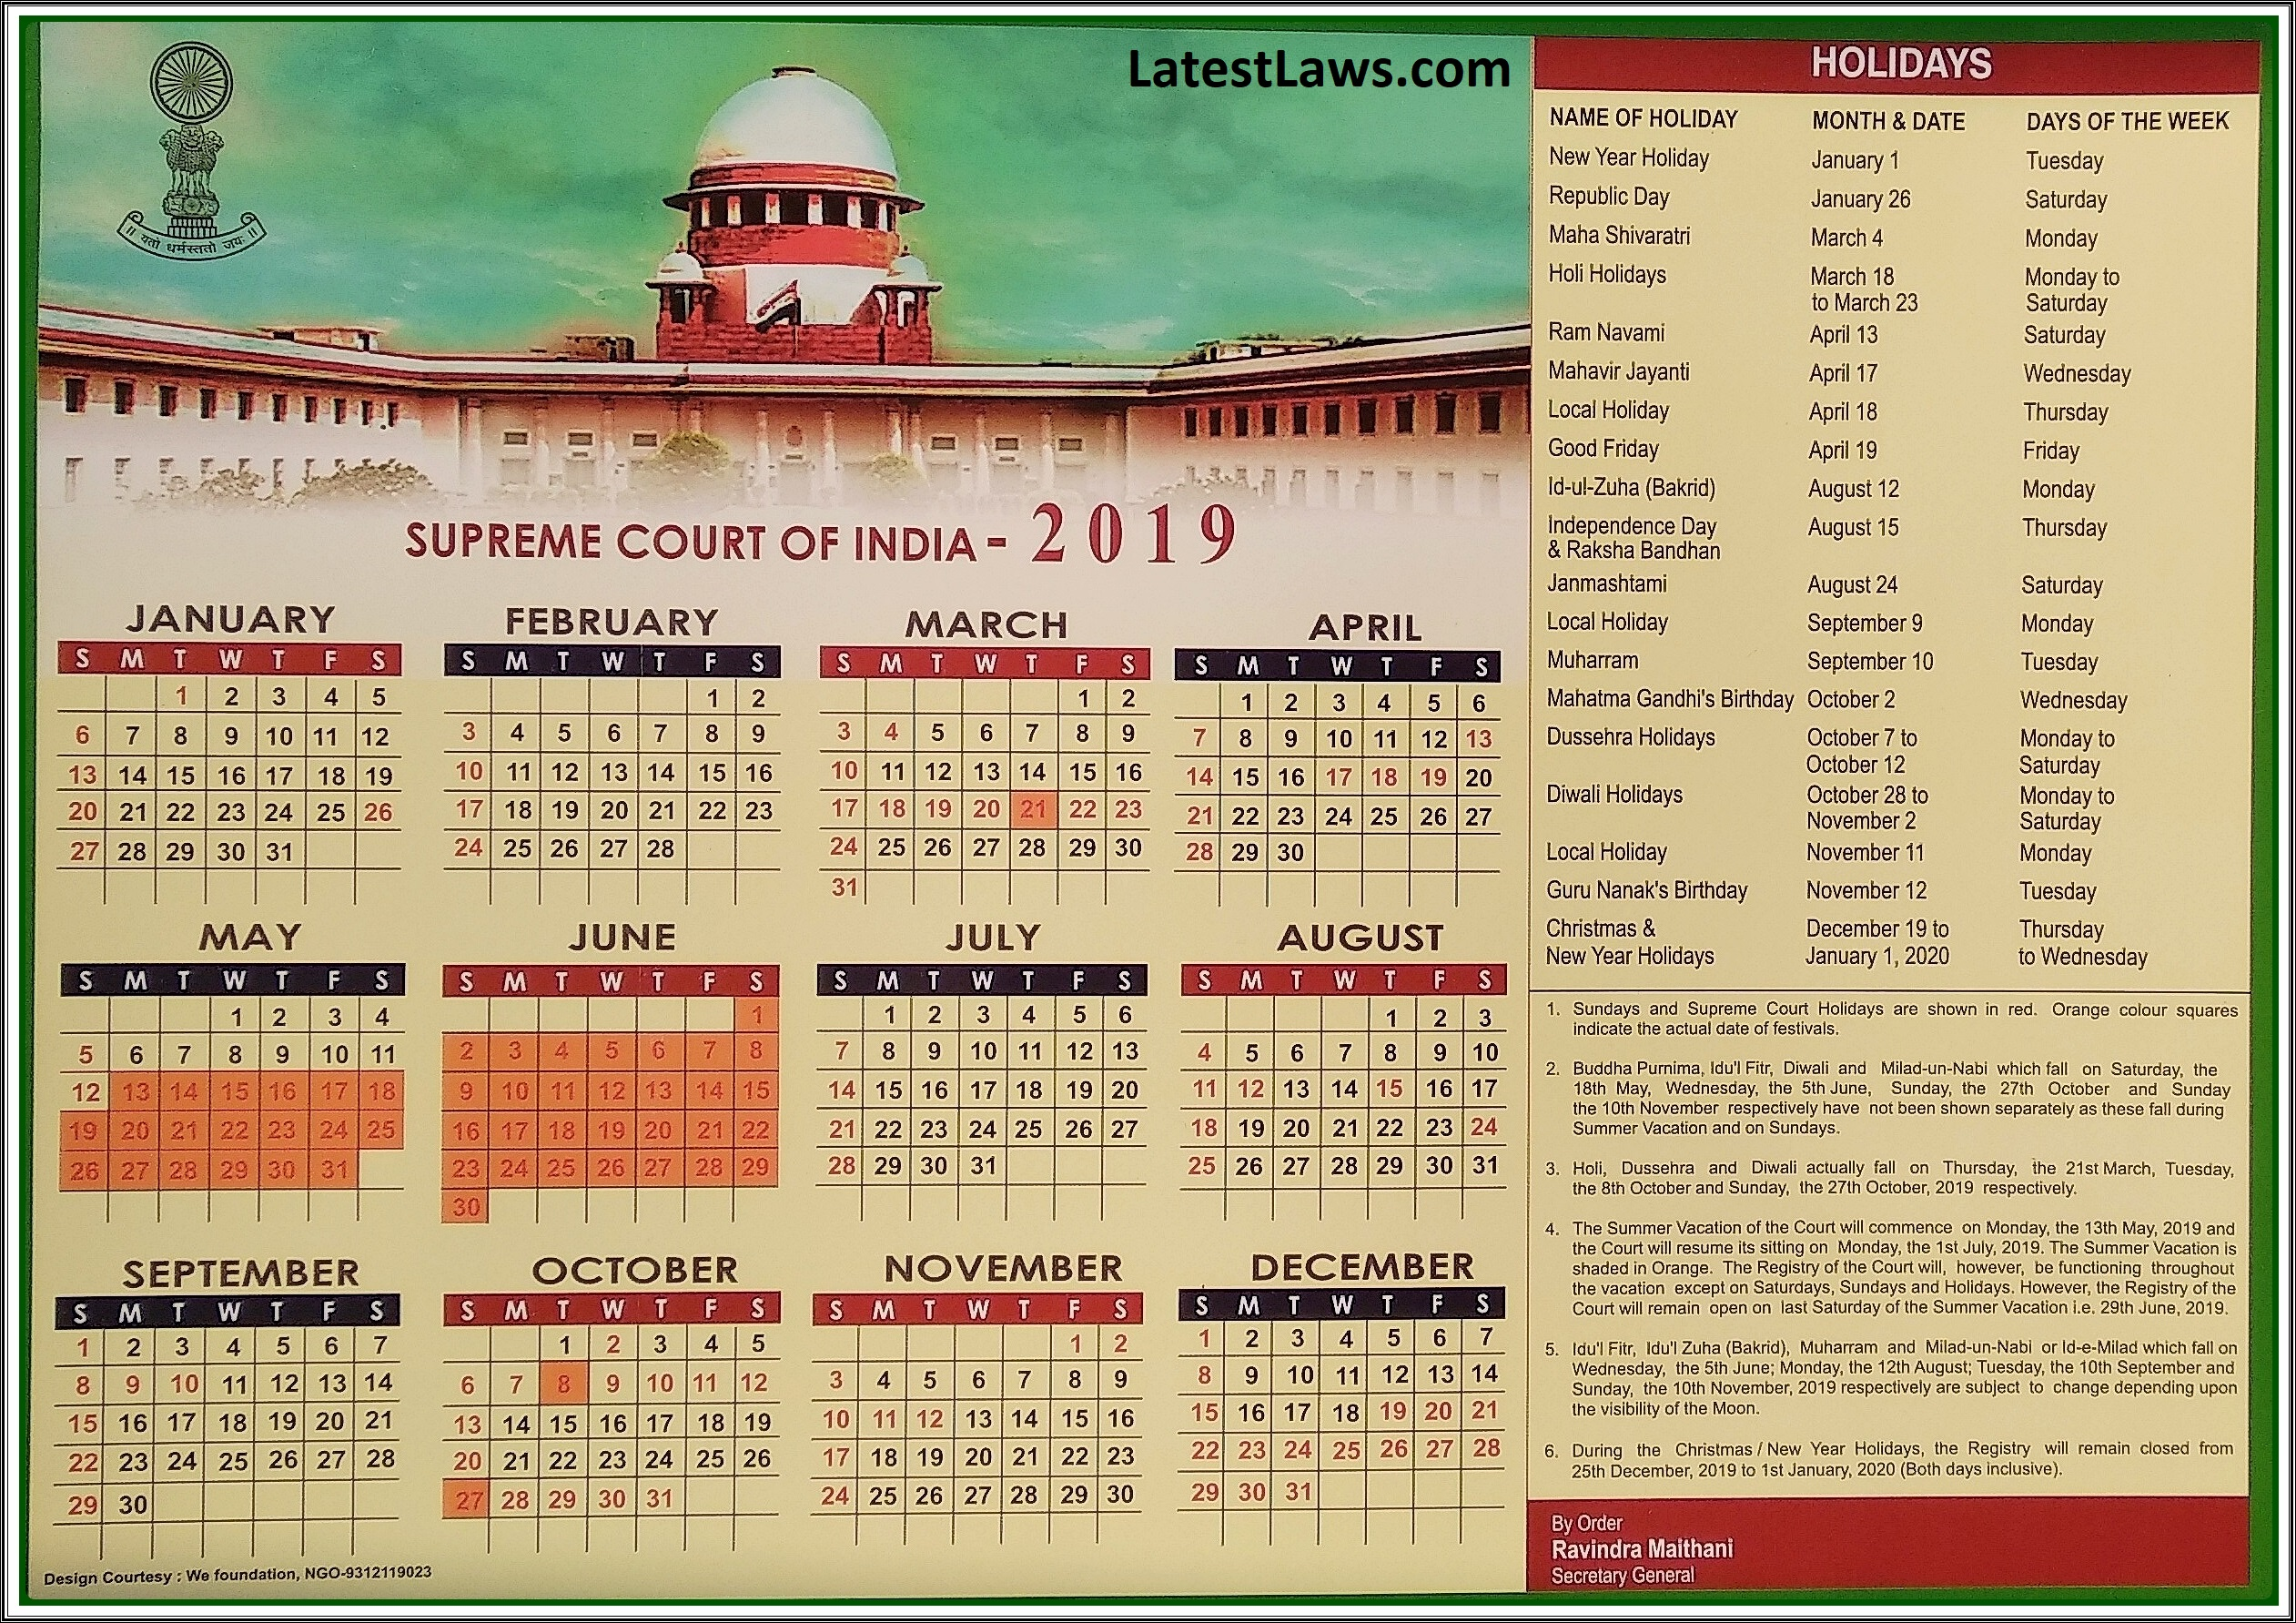 Supreme Court Calendar 2020 Supreme Court of India Calendar 2019 | Latest laws